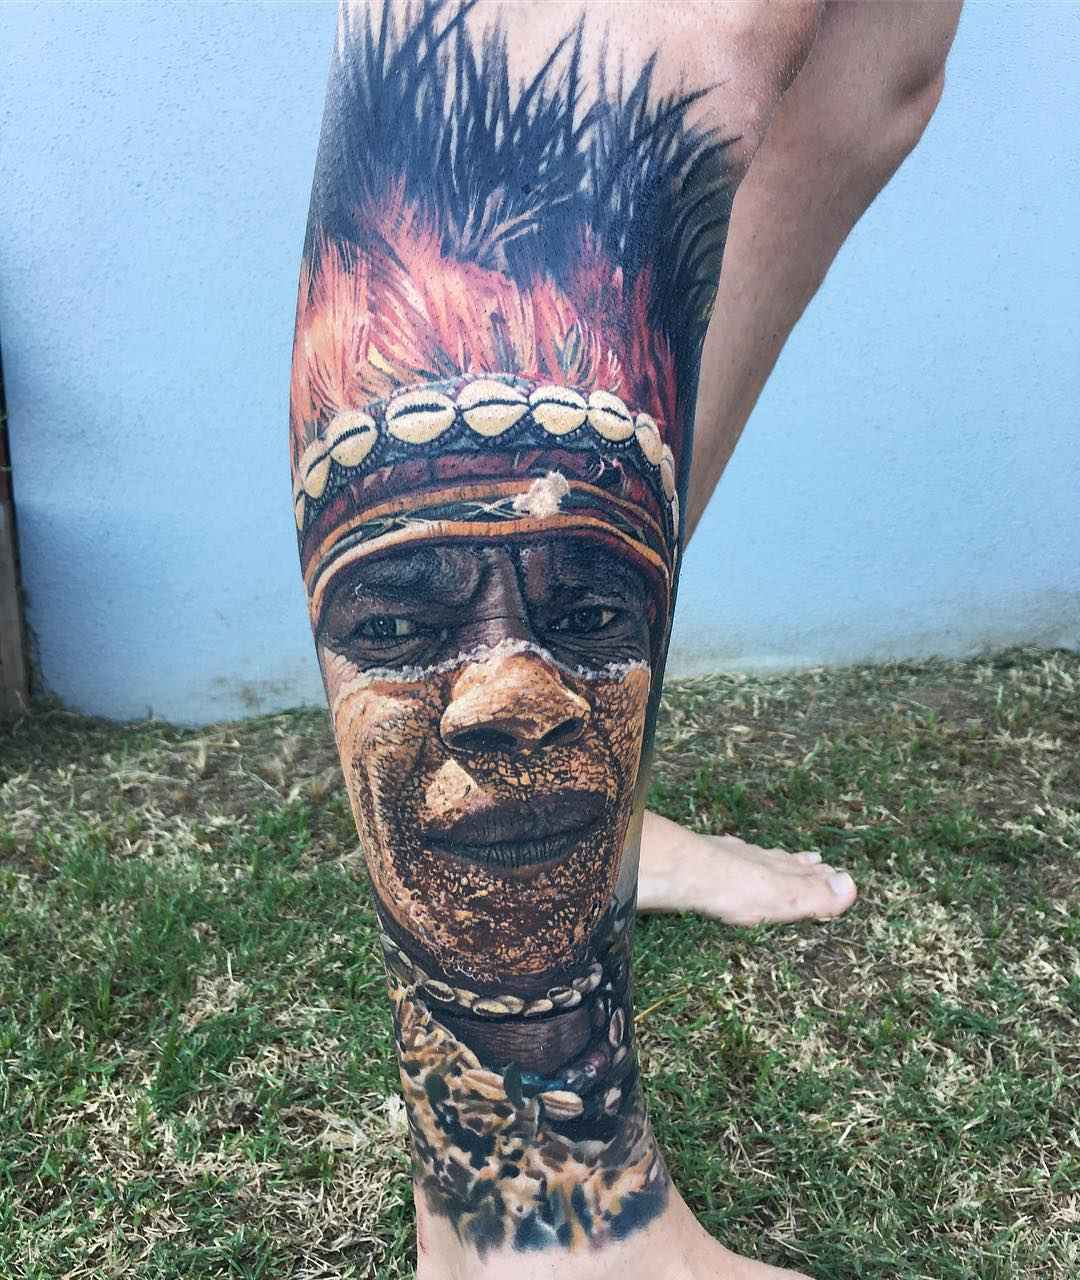 Tattoo Artists Steve Butcher From Auckland New Zealand Inkppl Tattoo Magazine